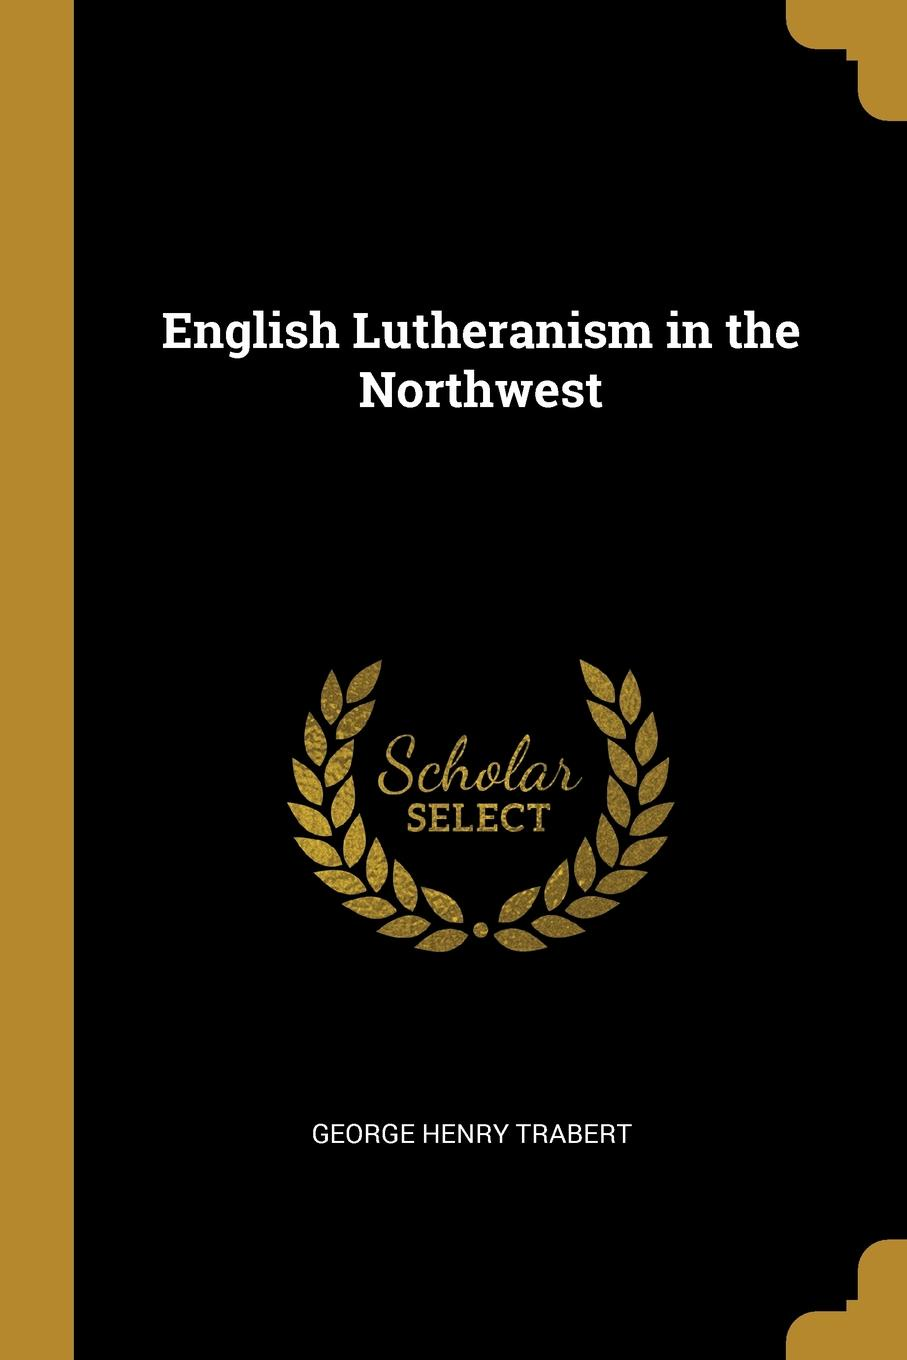 George Henry Trabert English Lutheranism in the Northwest rice alfred ernest an oregon girl a tale of american life in the new west